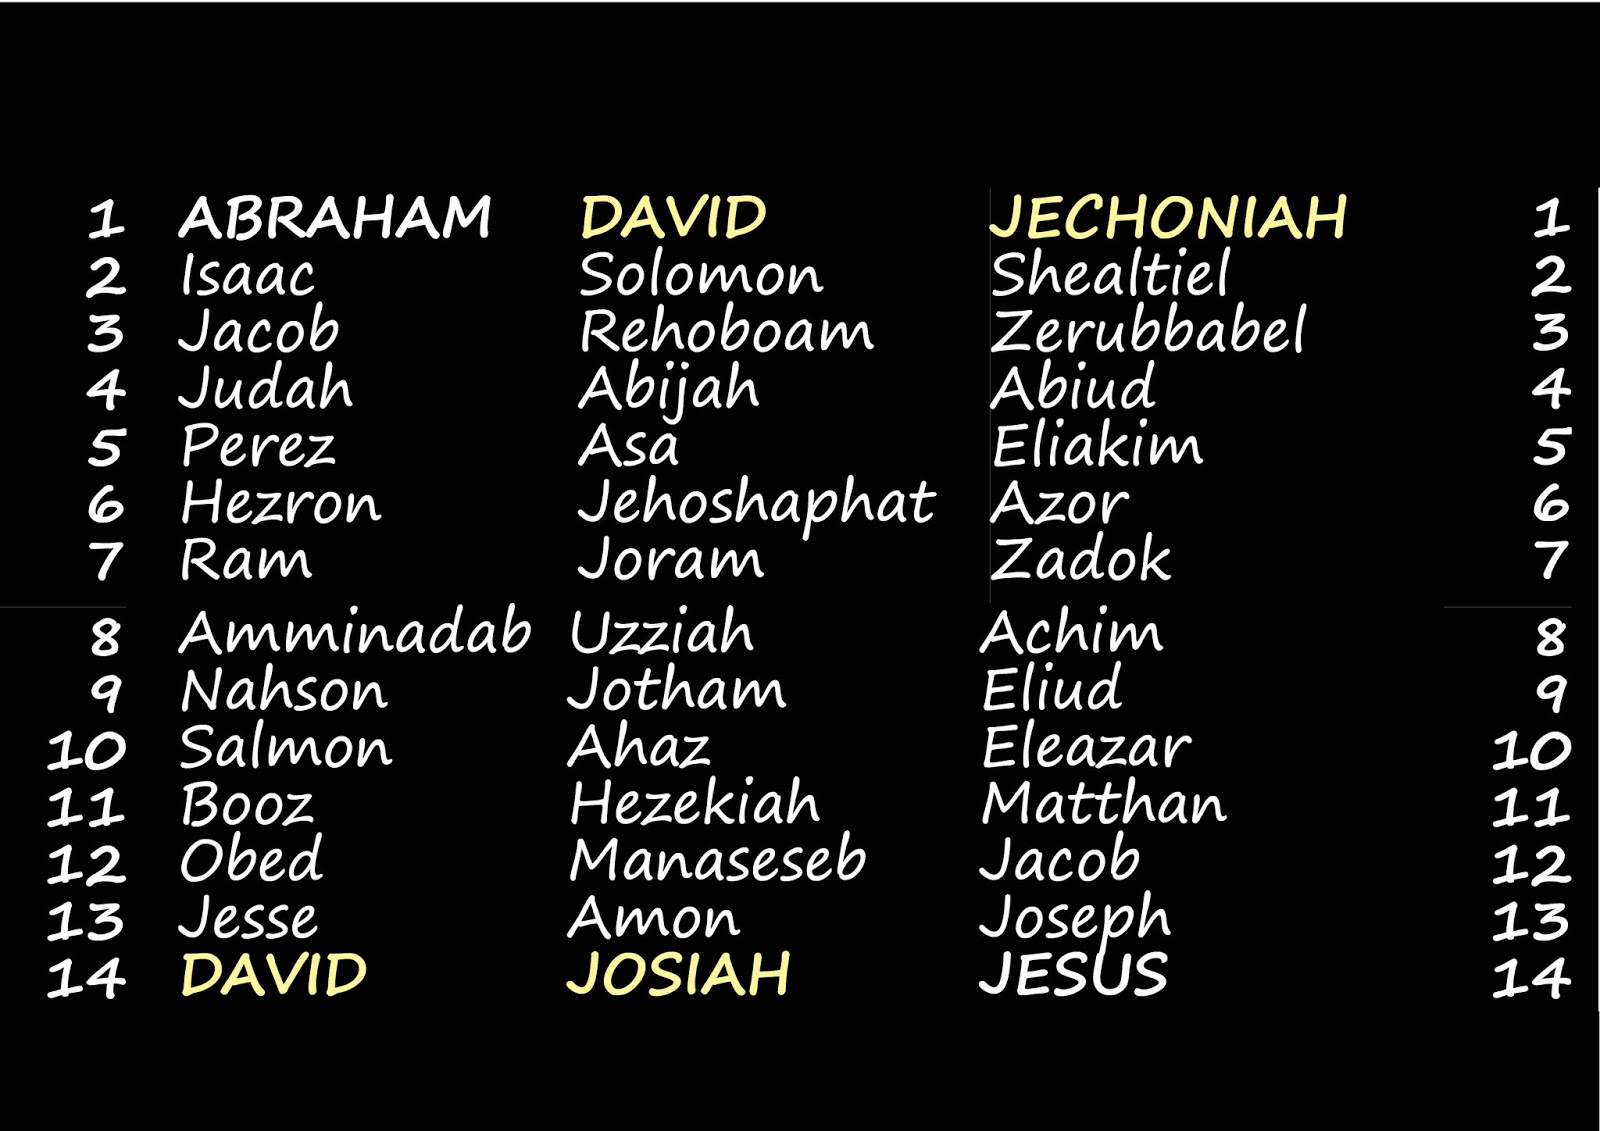 Following Abraham David Josiah And Jechoniah Jesus But This Division Is Inconsistent Because It Repeats In The Second Column